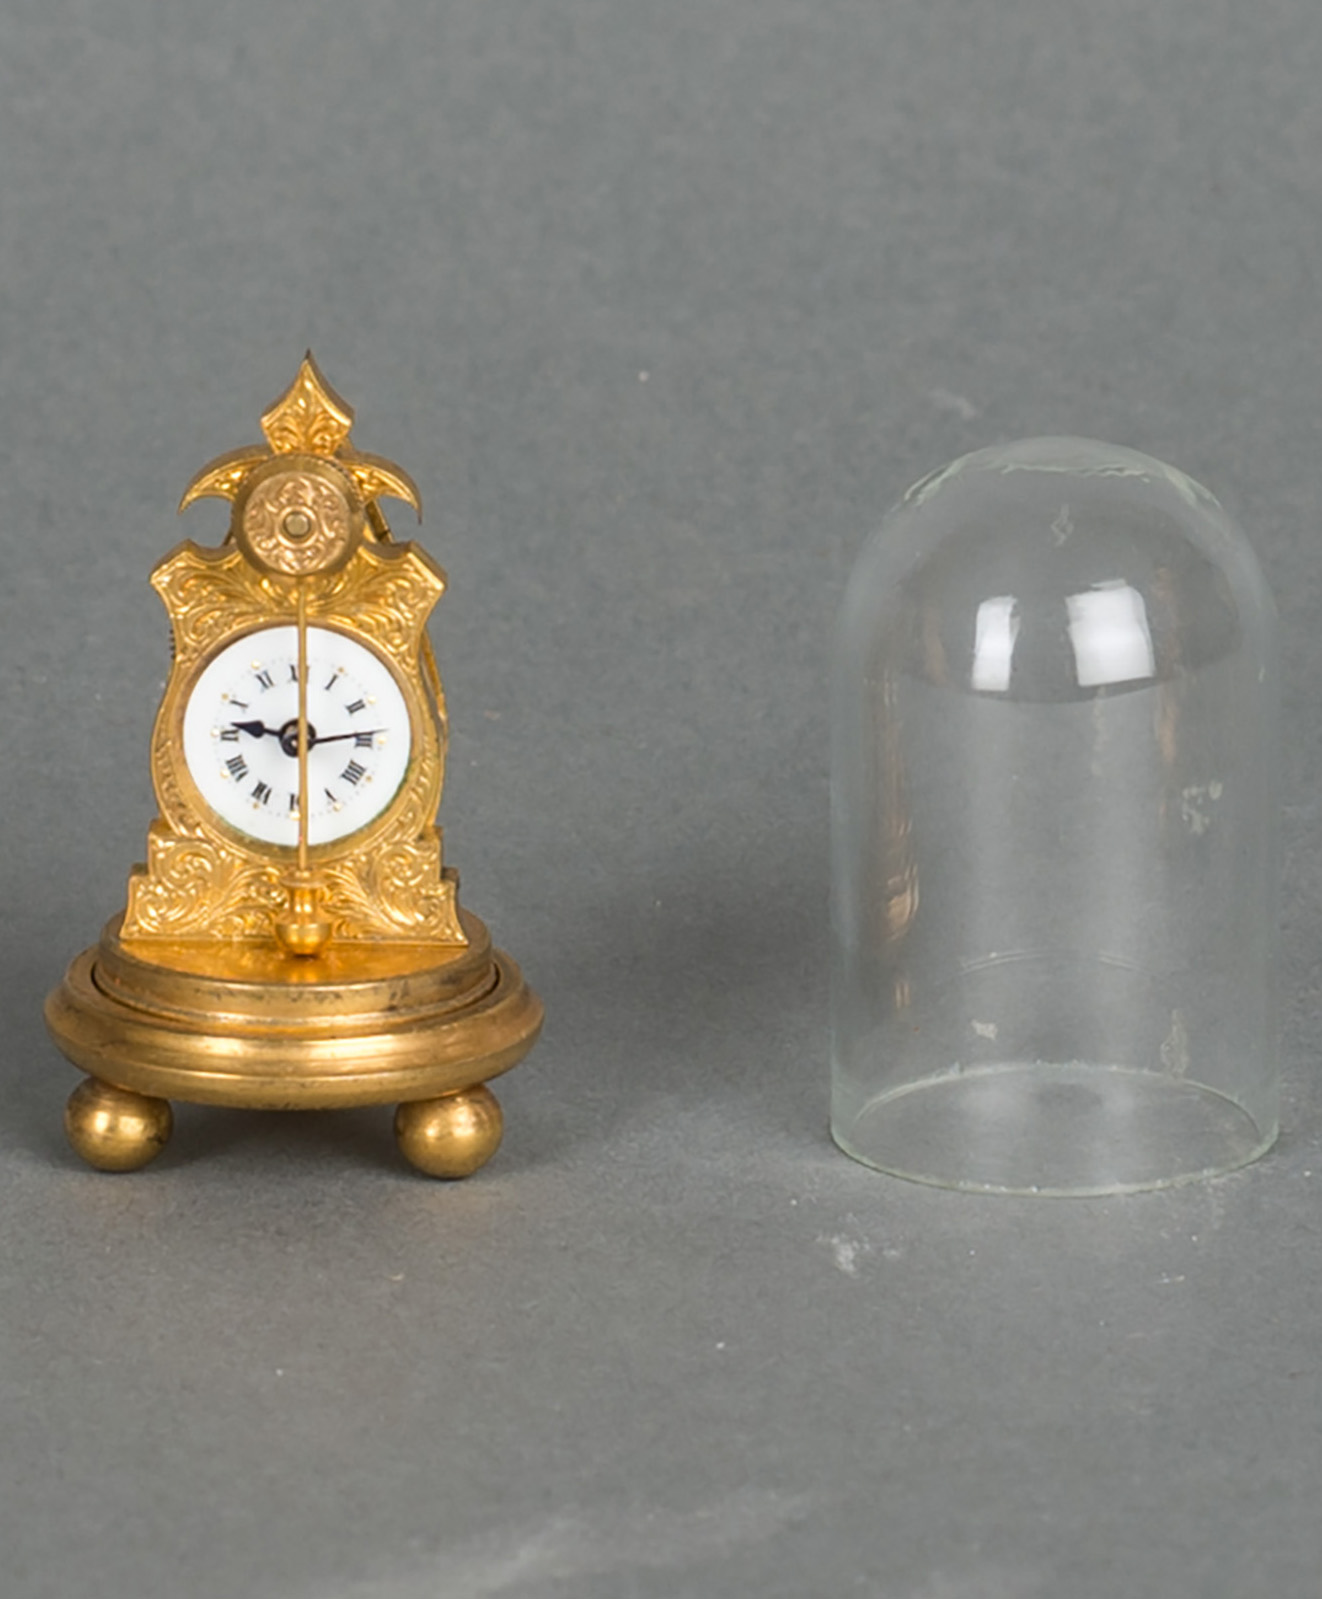 A very small and unusual Austrian ormolu zappler miniature clock with matching dome and enamel dial, circa 1860